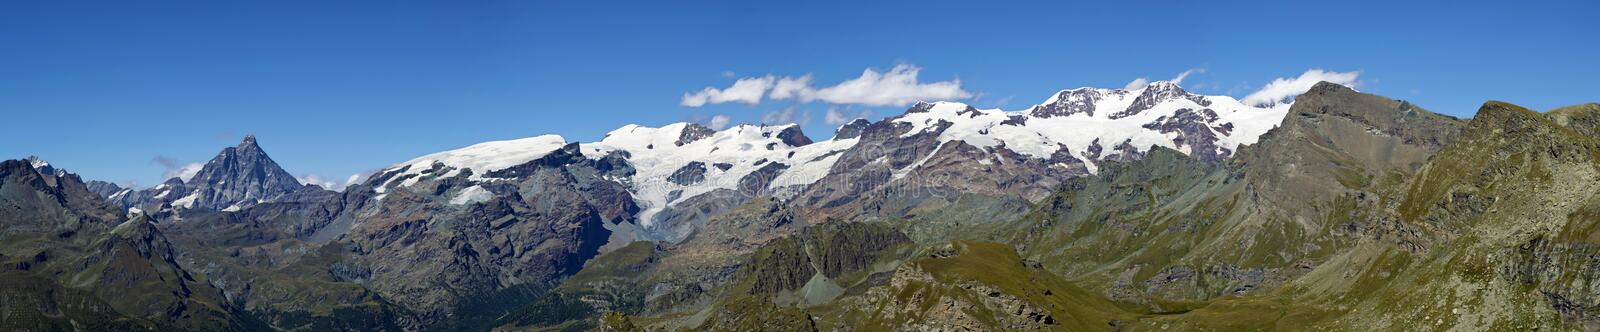 Download Panoramic View Of Monte Rosa Cervino Matterhorn Stock Photo - Image: 27171682